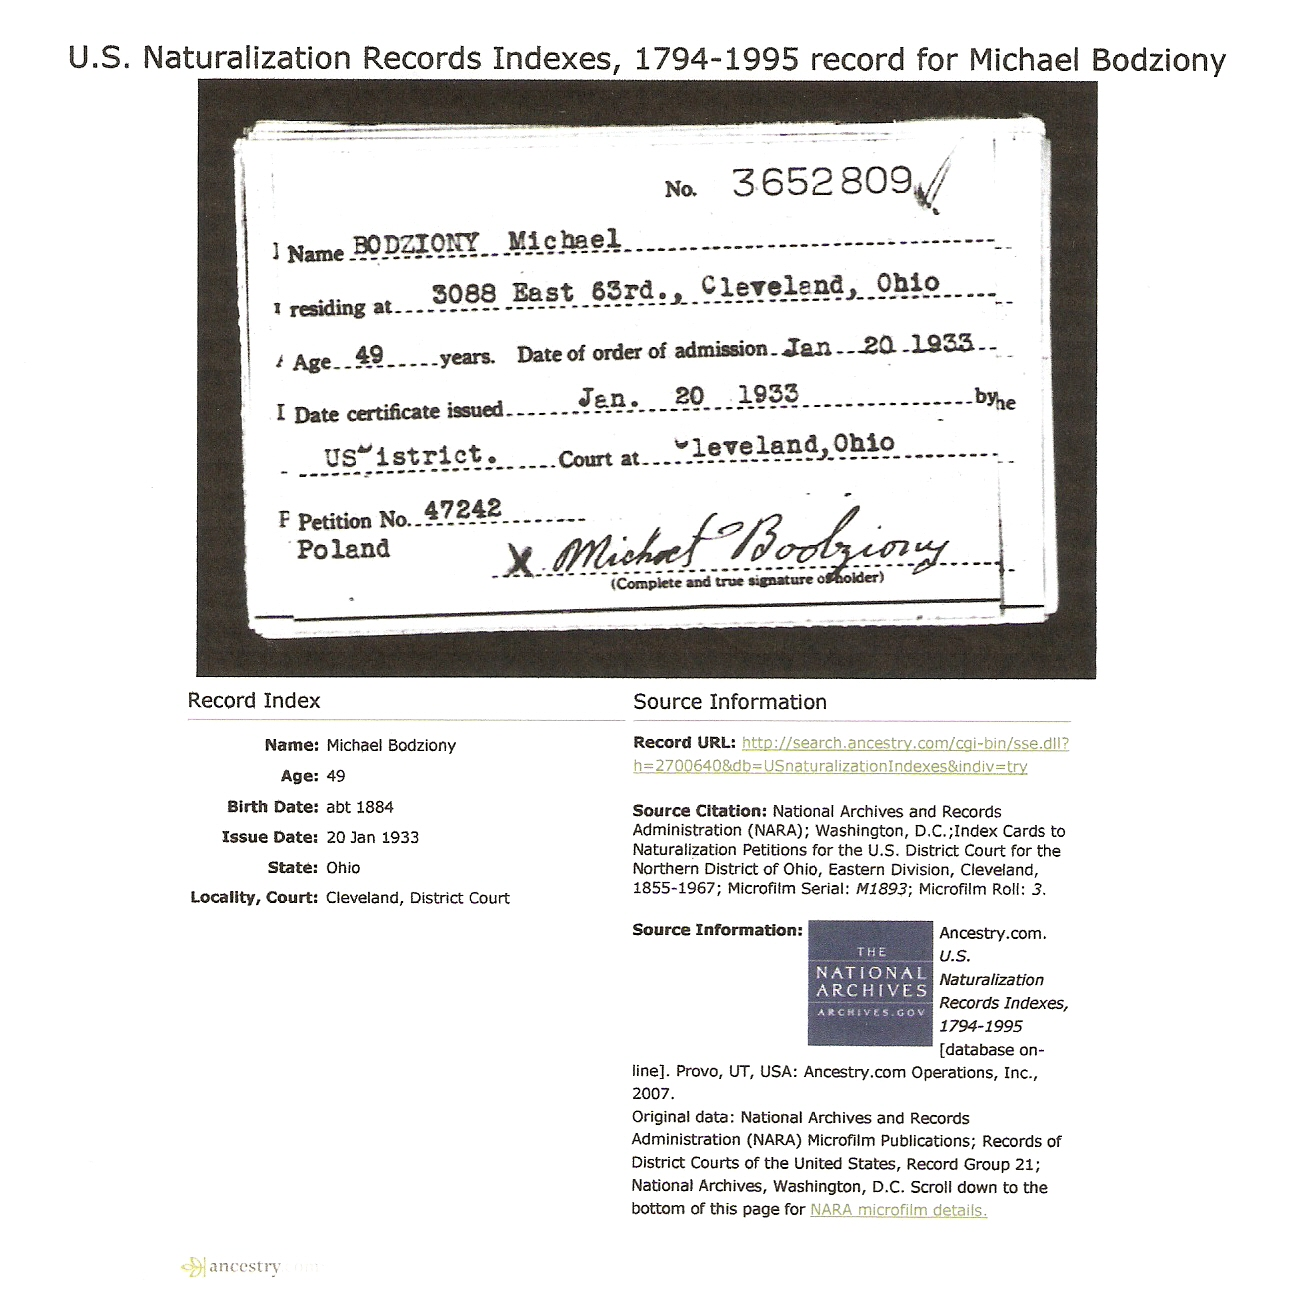 Bodziony family documents the spiraling chains kowalski death certificate source social security applications and claims index dob listed as 29 jun gravestone photo1 photo2 calvary cemetery cleveland 1betcityfo Choice Image